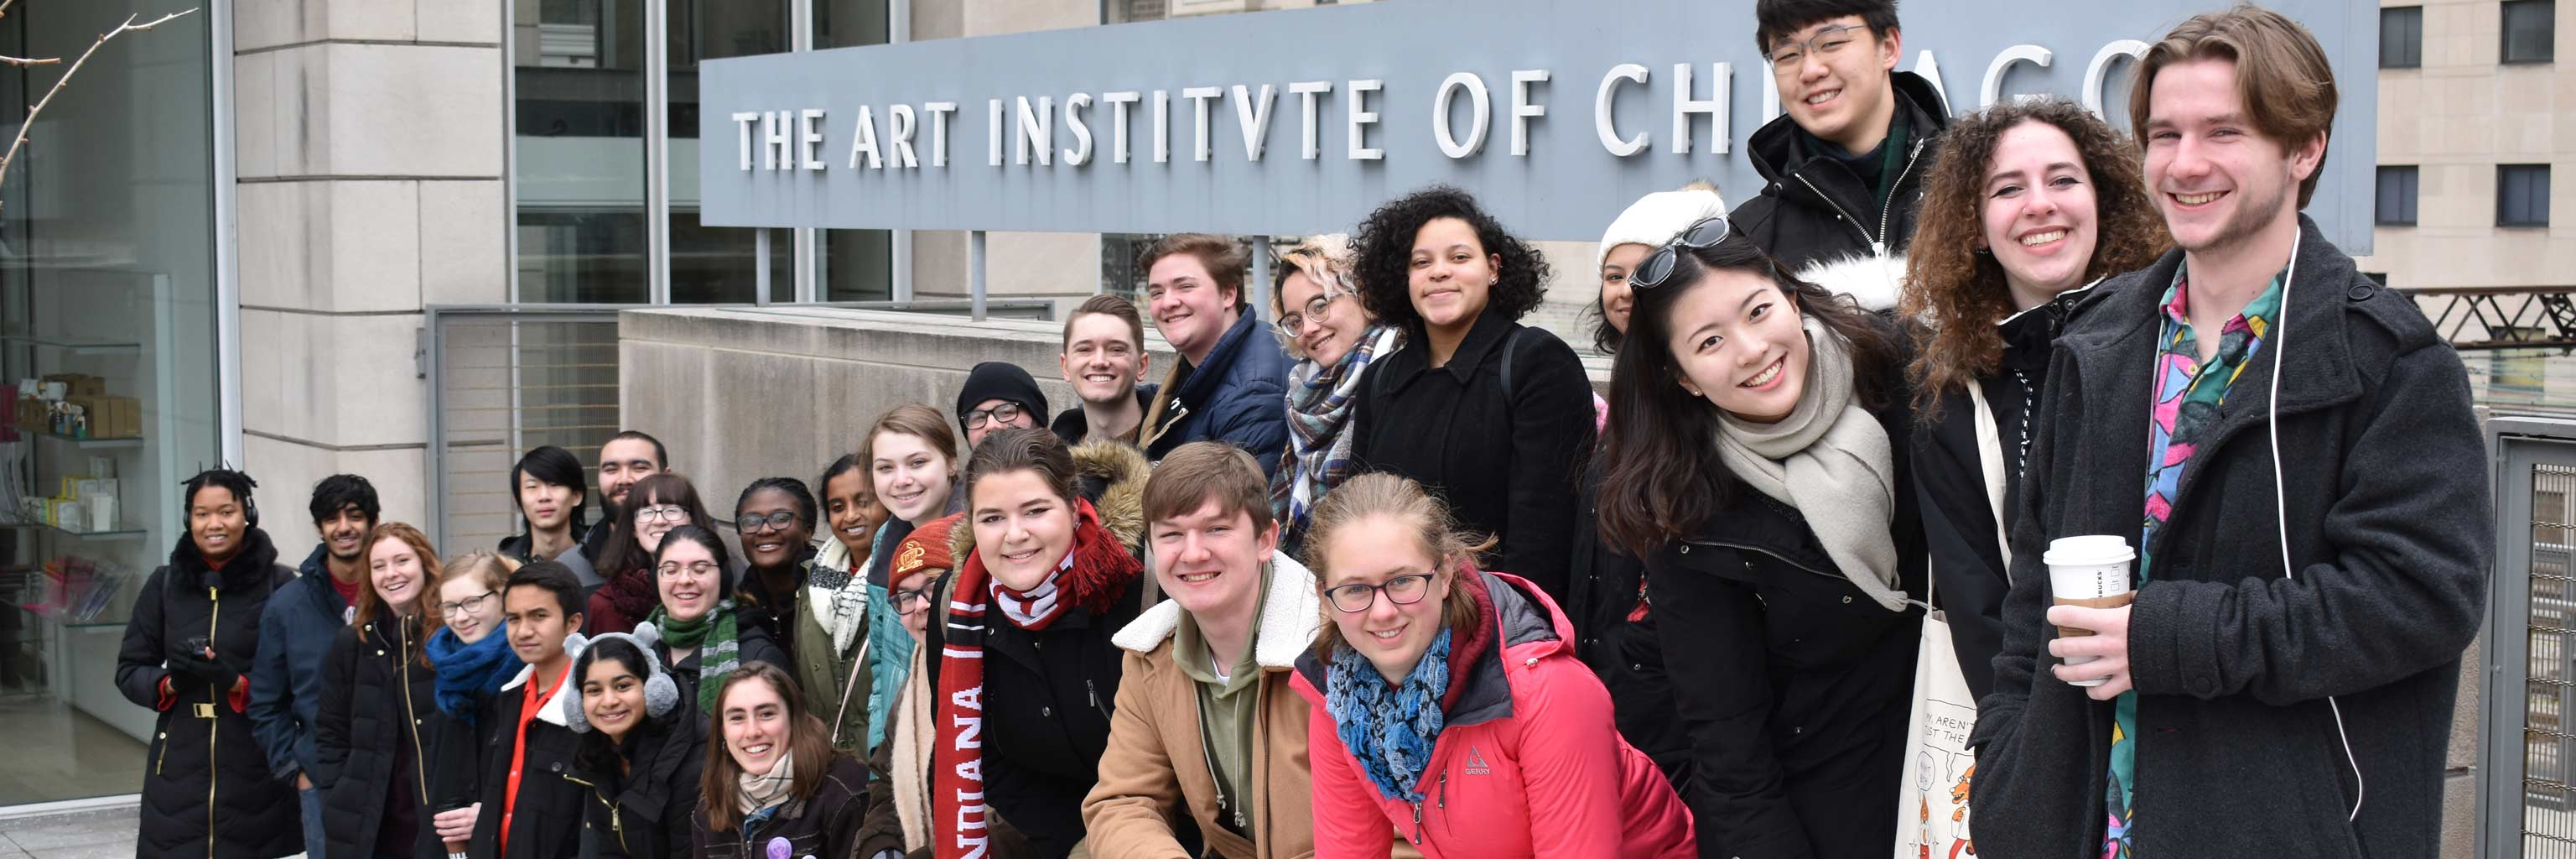 group photo of students in front of art institute sign